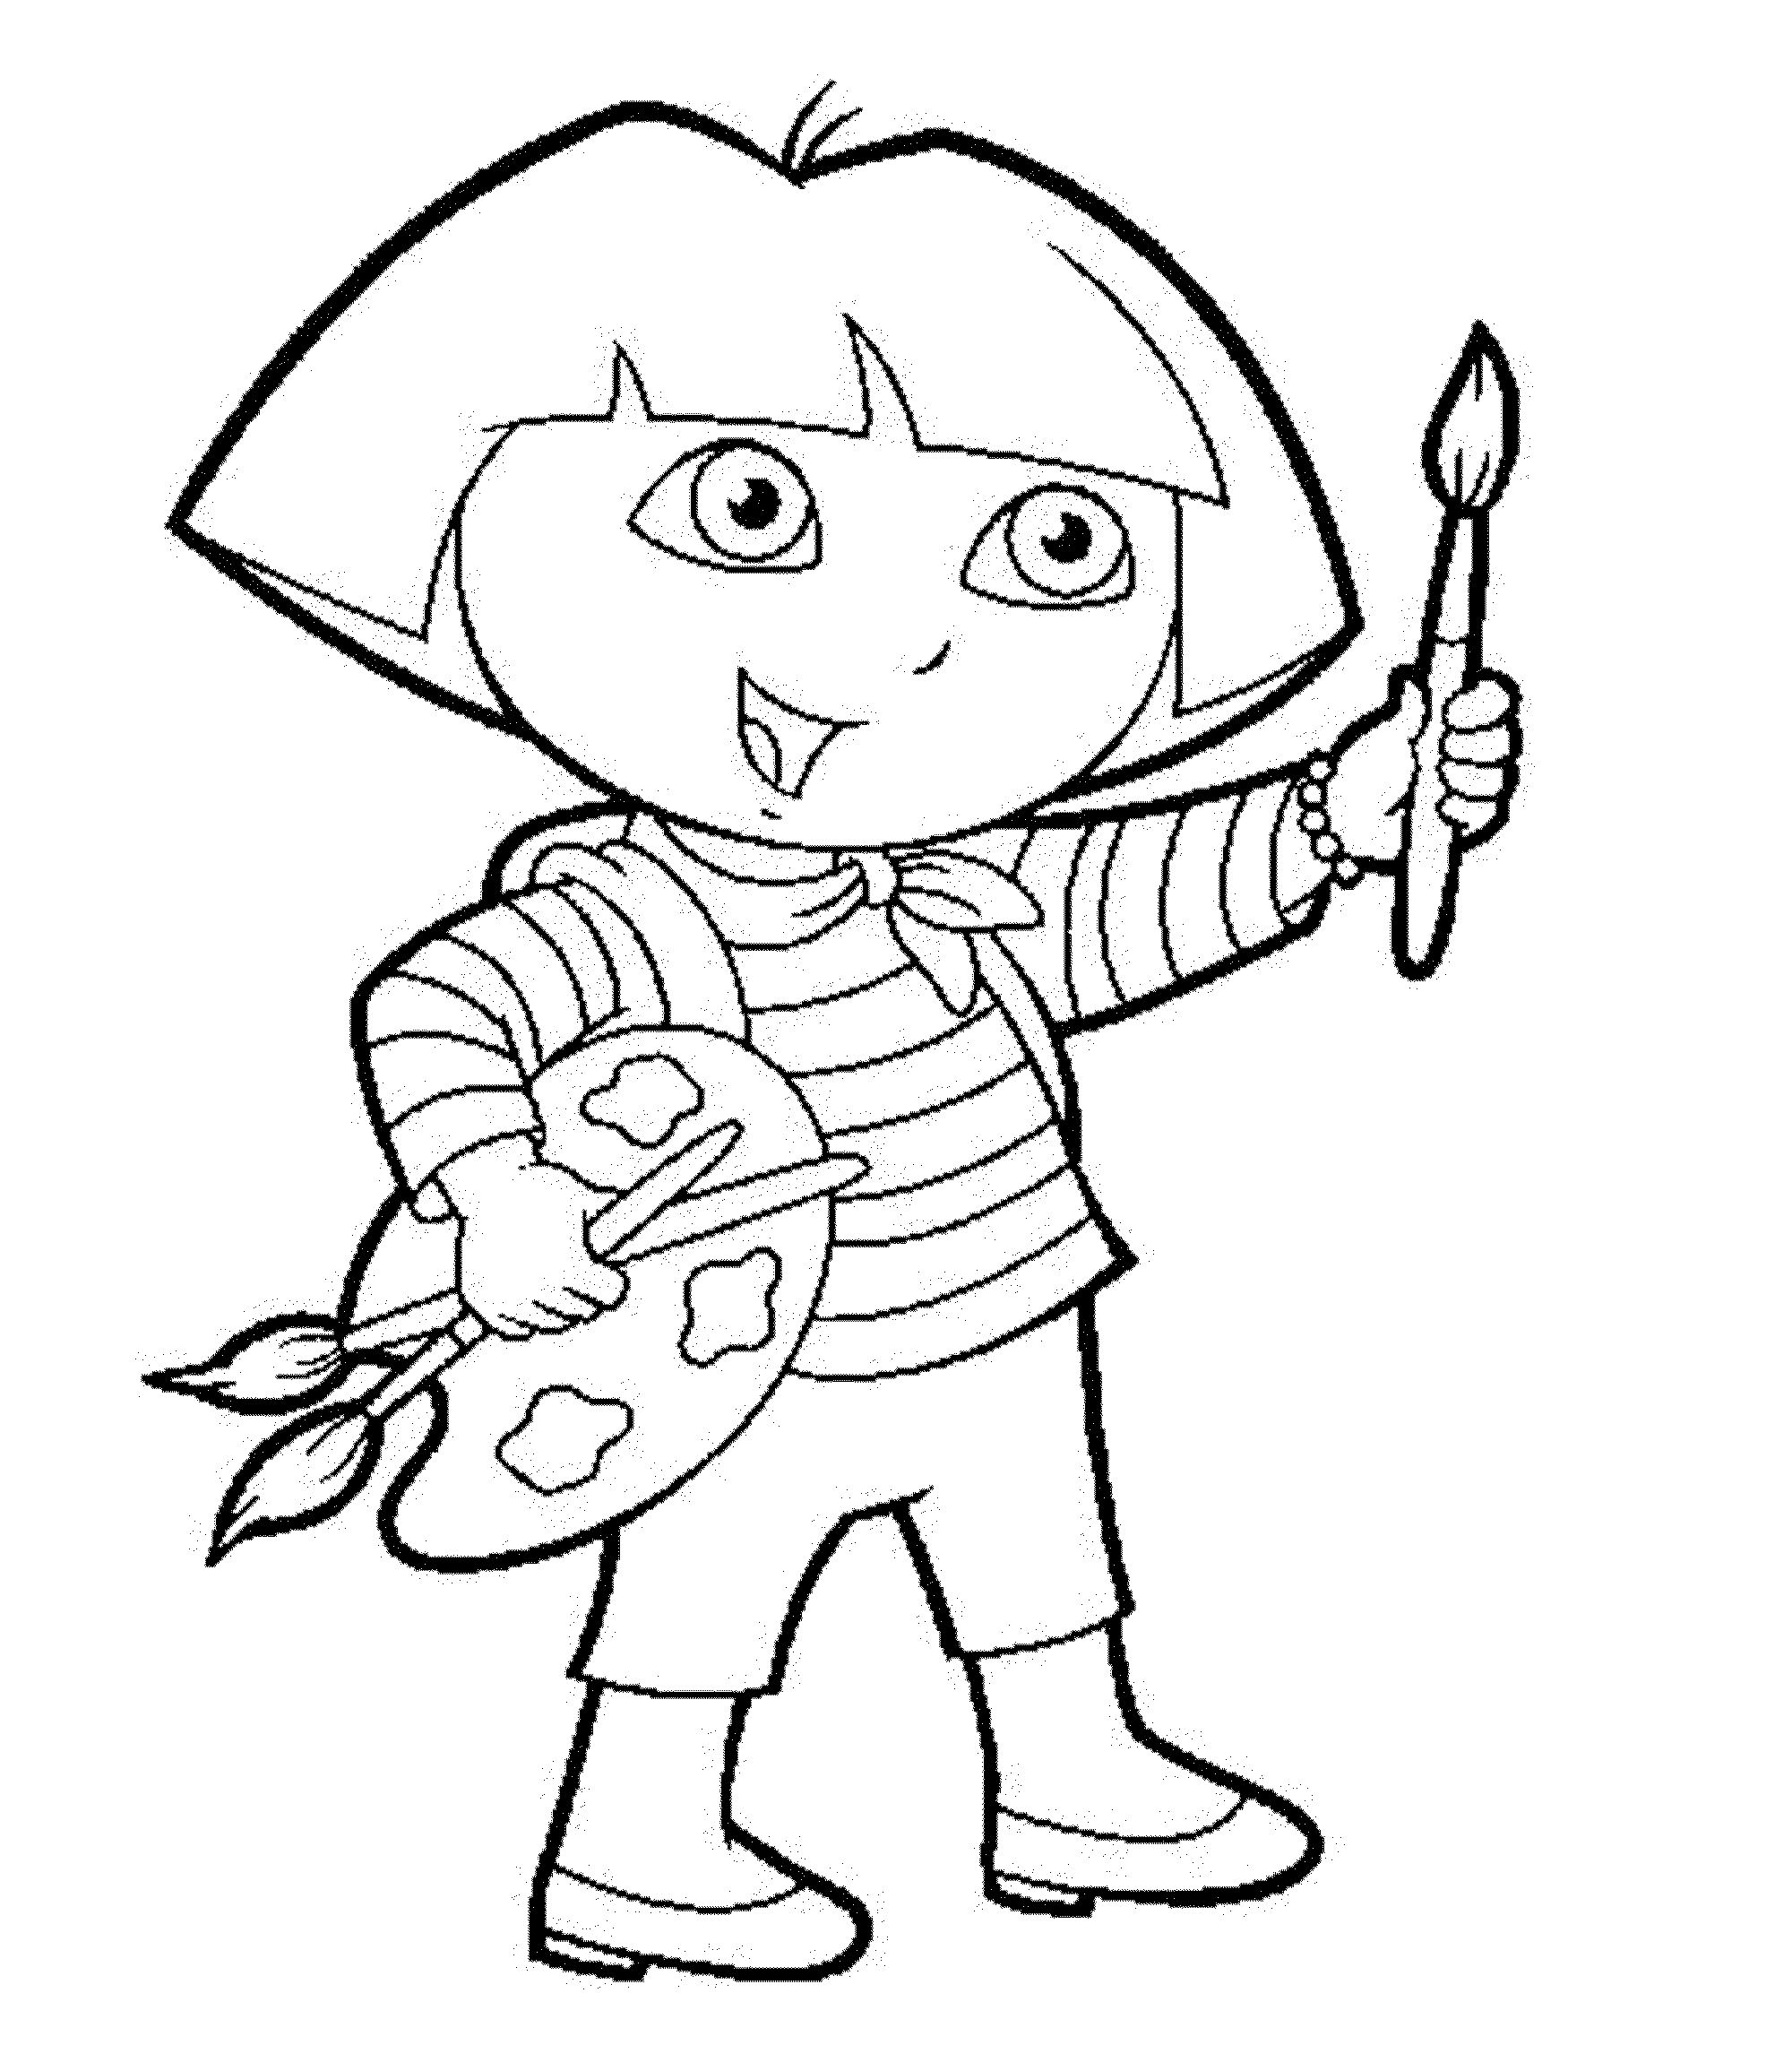 dora colouring print download dora coloring pages to learn new things colouring dora